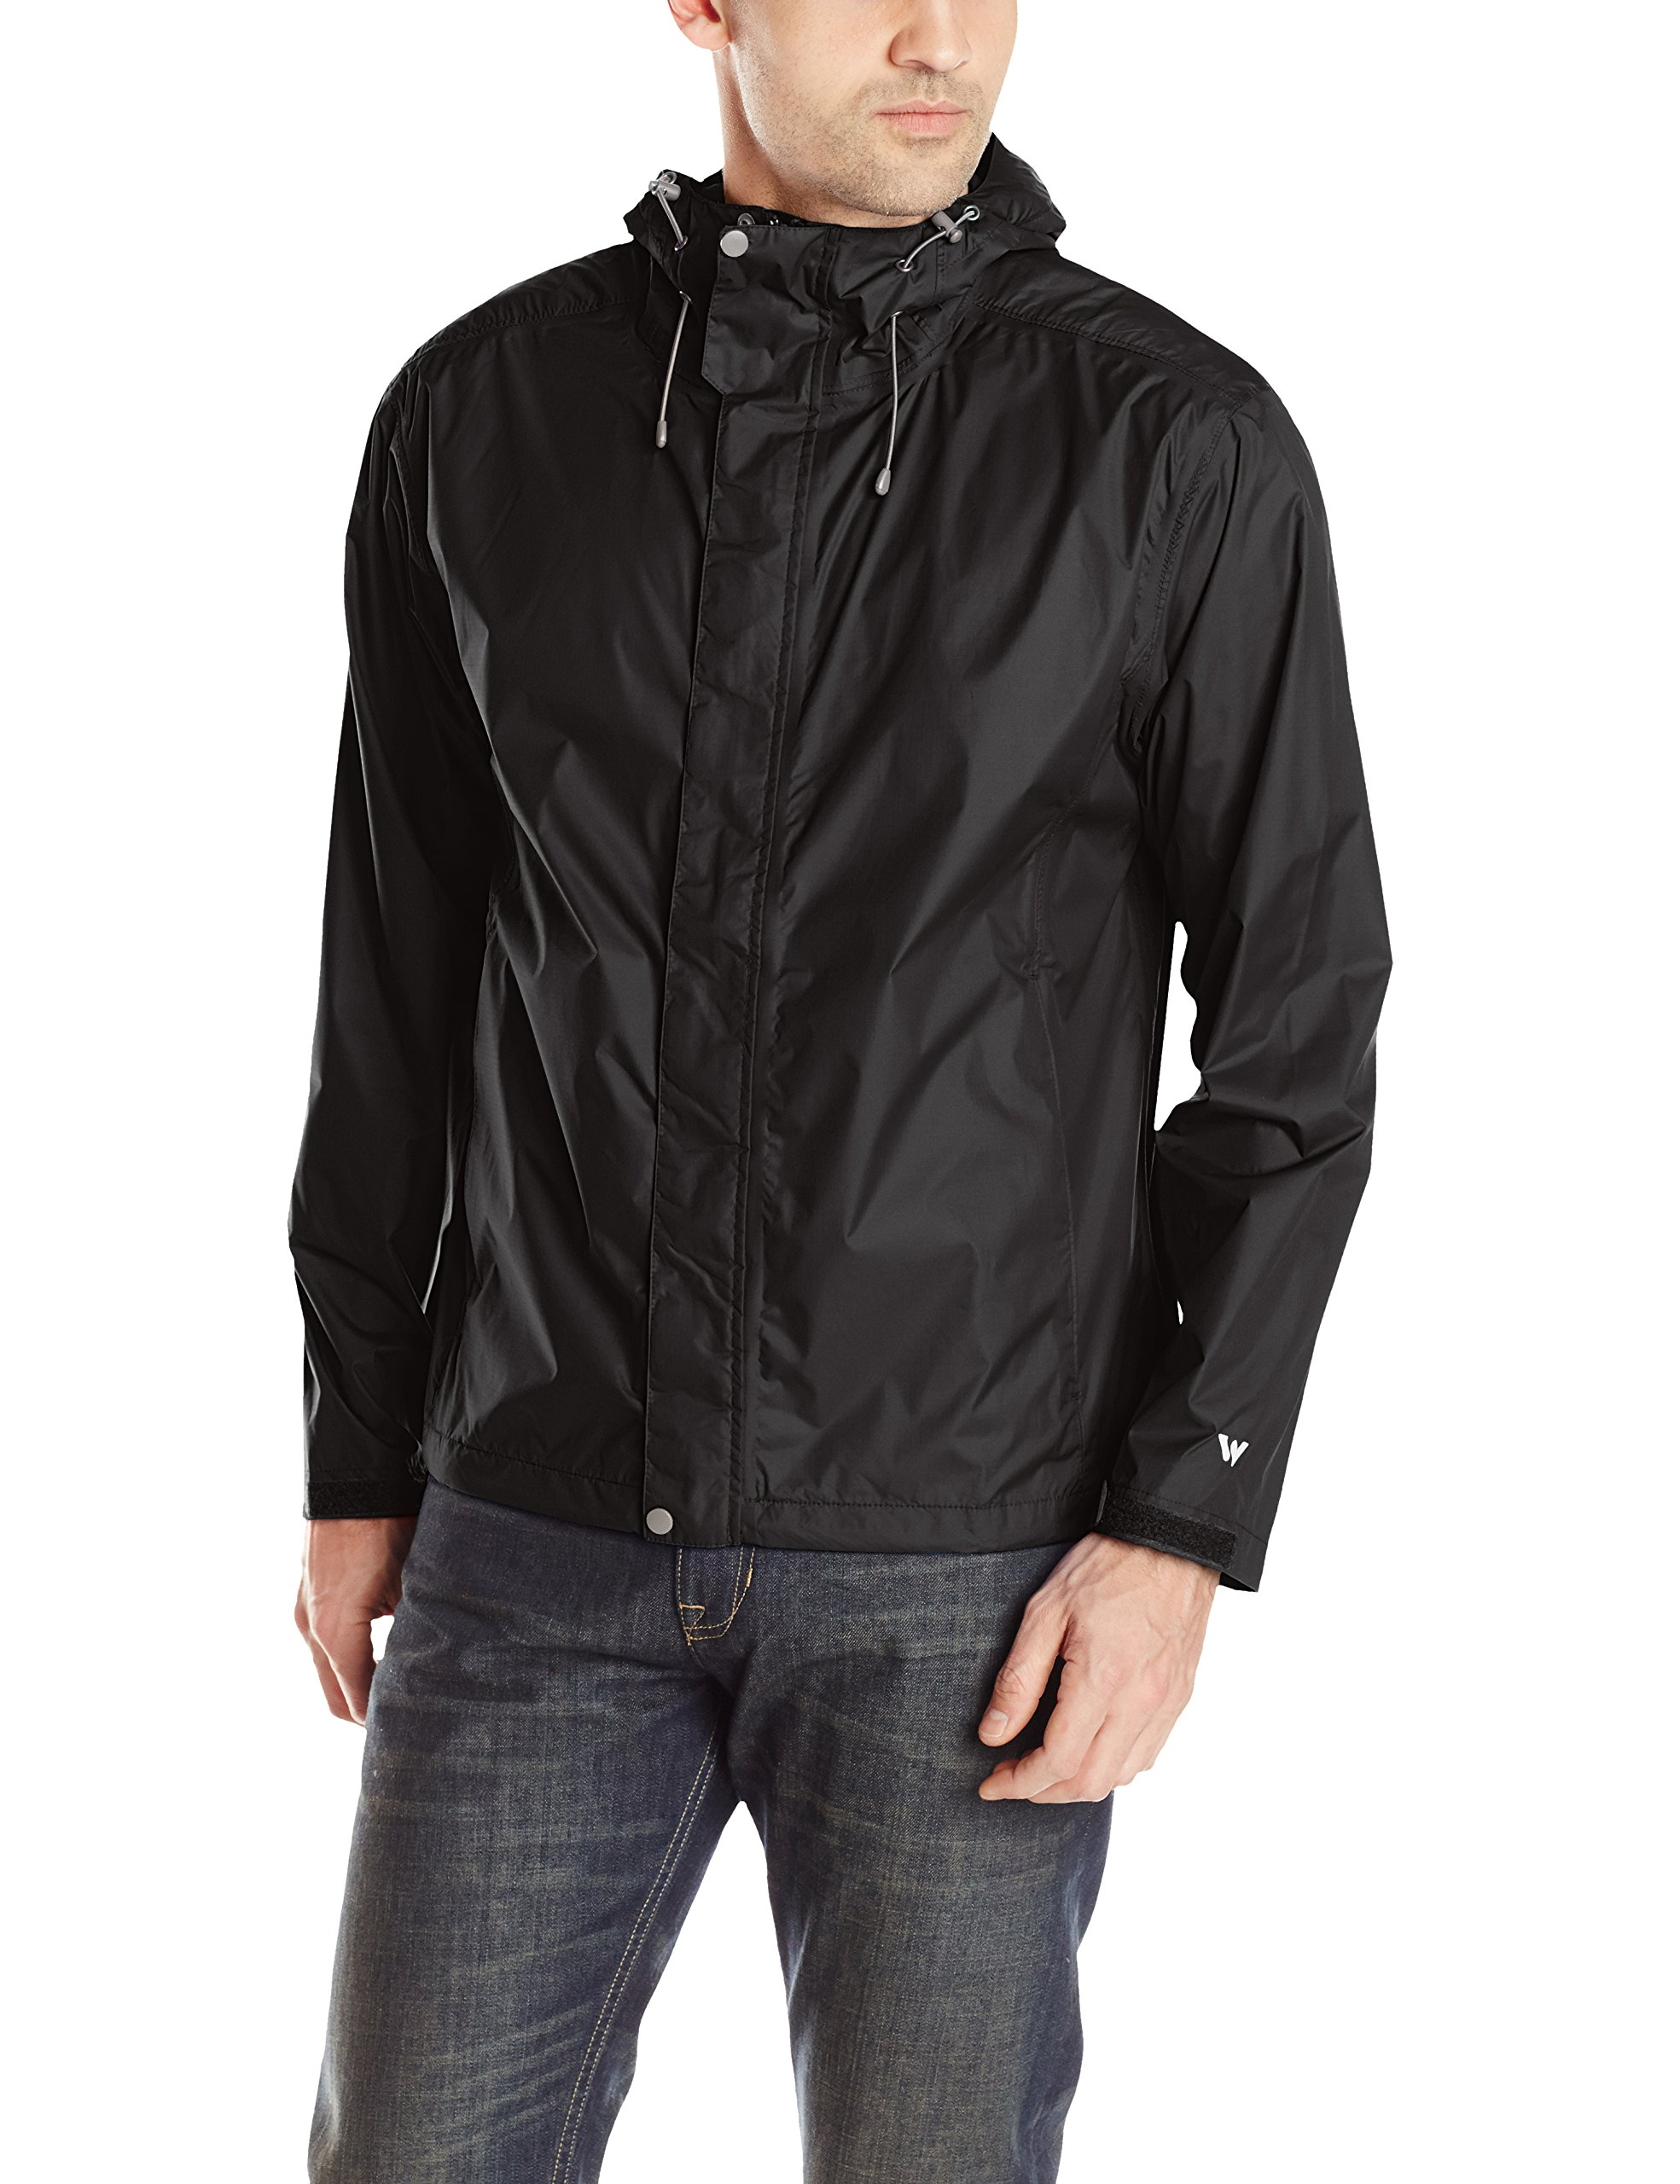 White Sierra Men's Trabagon Rain Shell, Black, Large by White Sierra